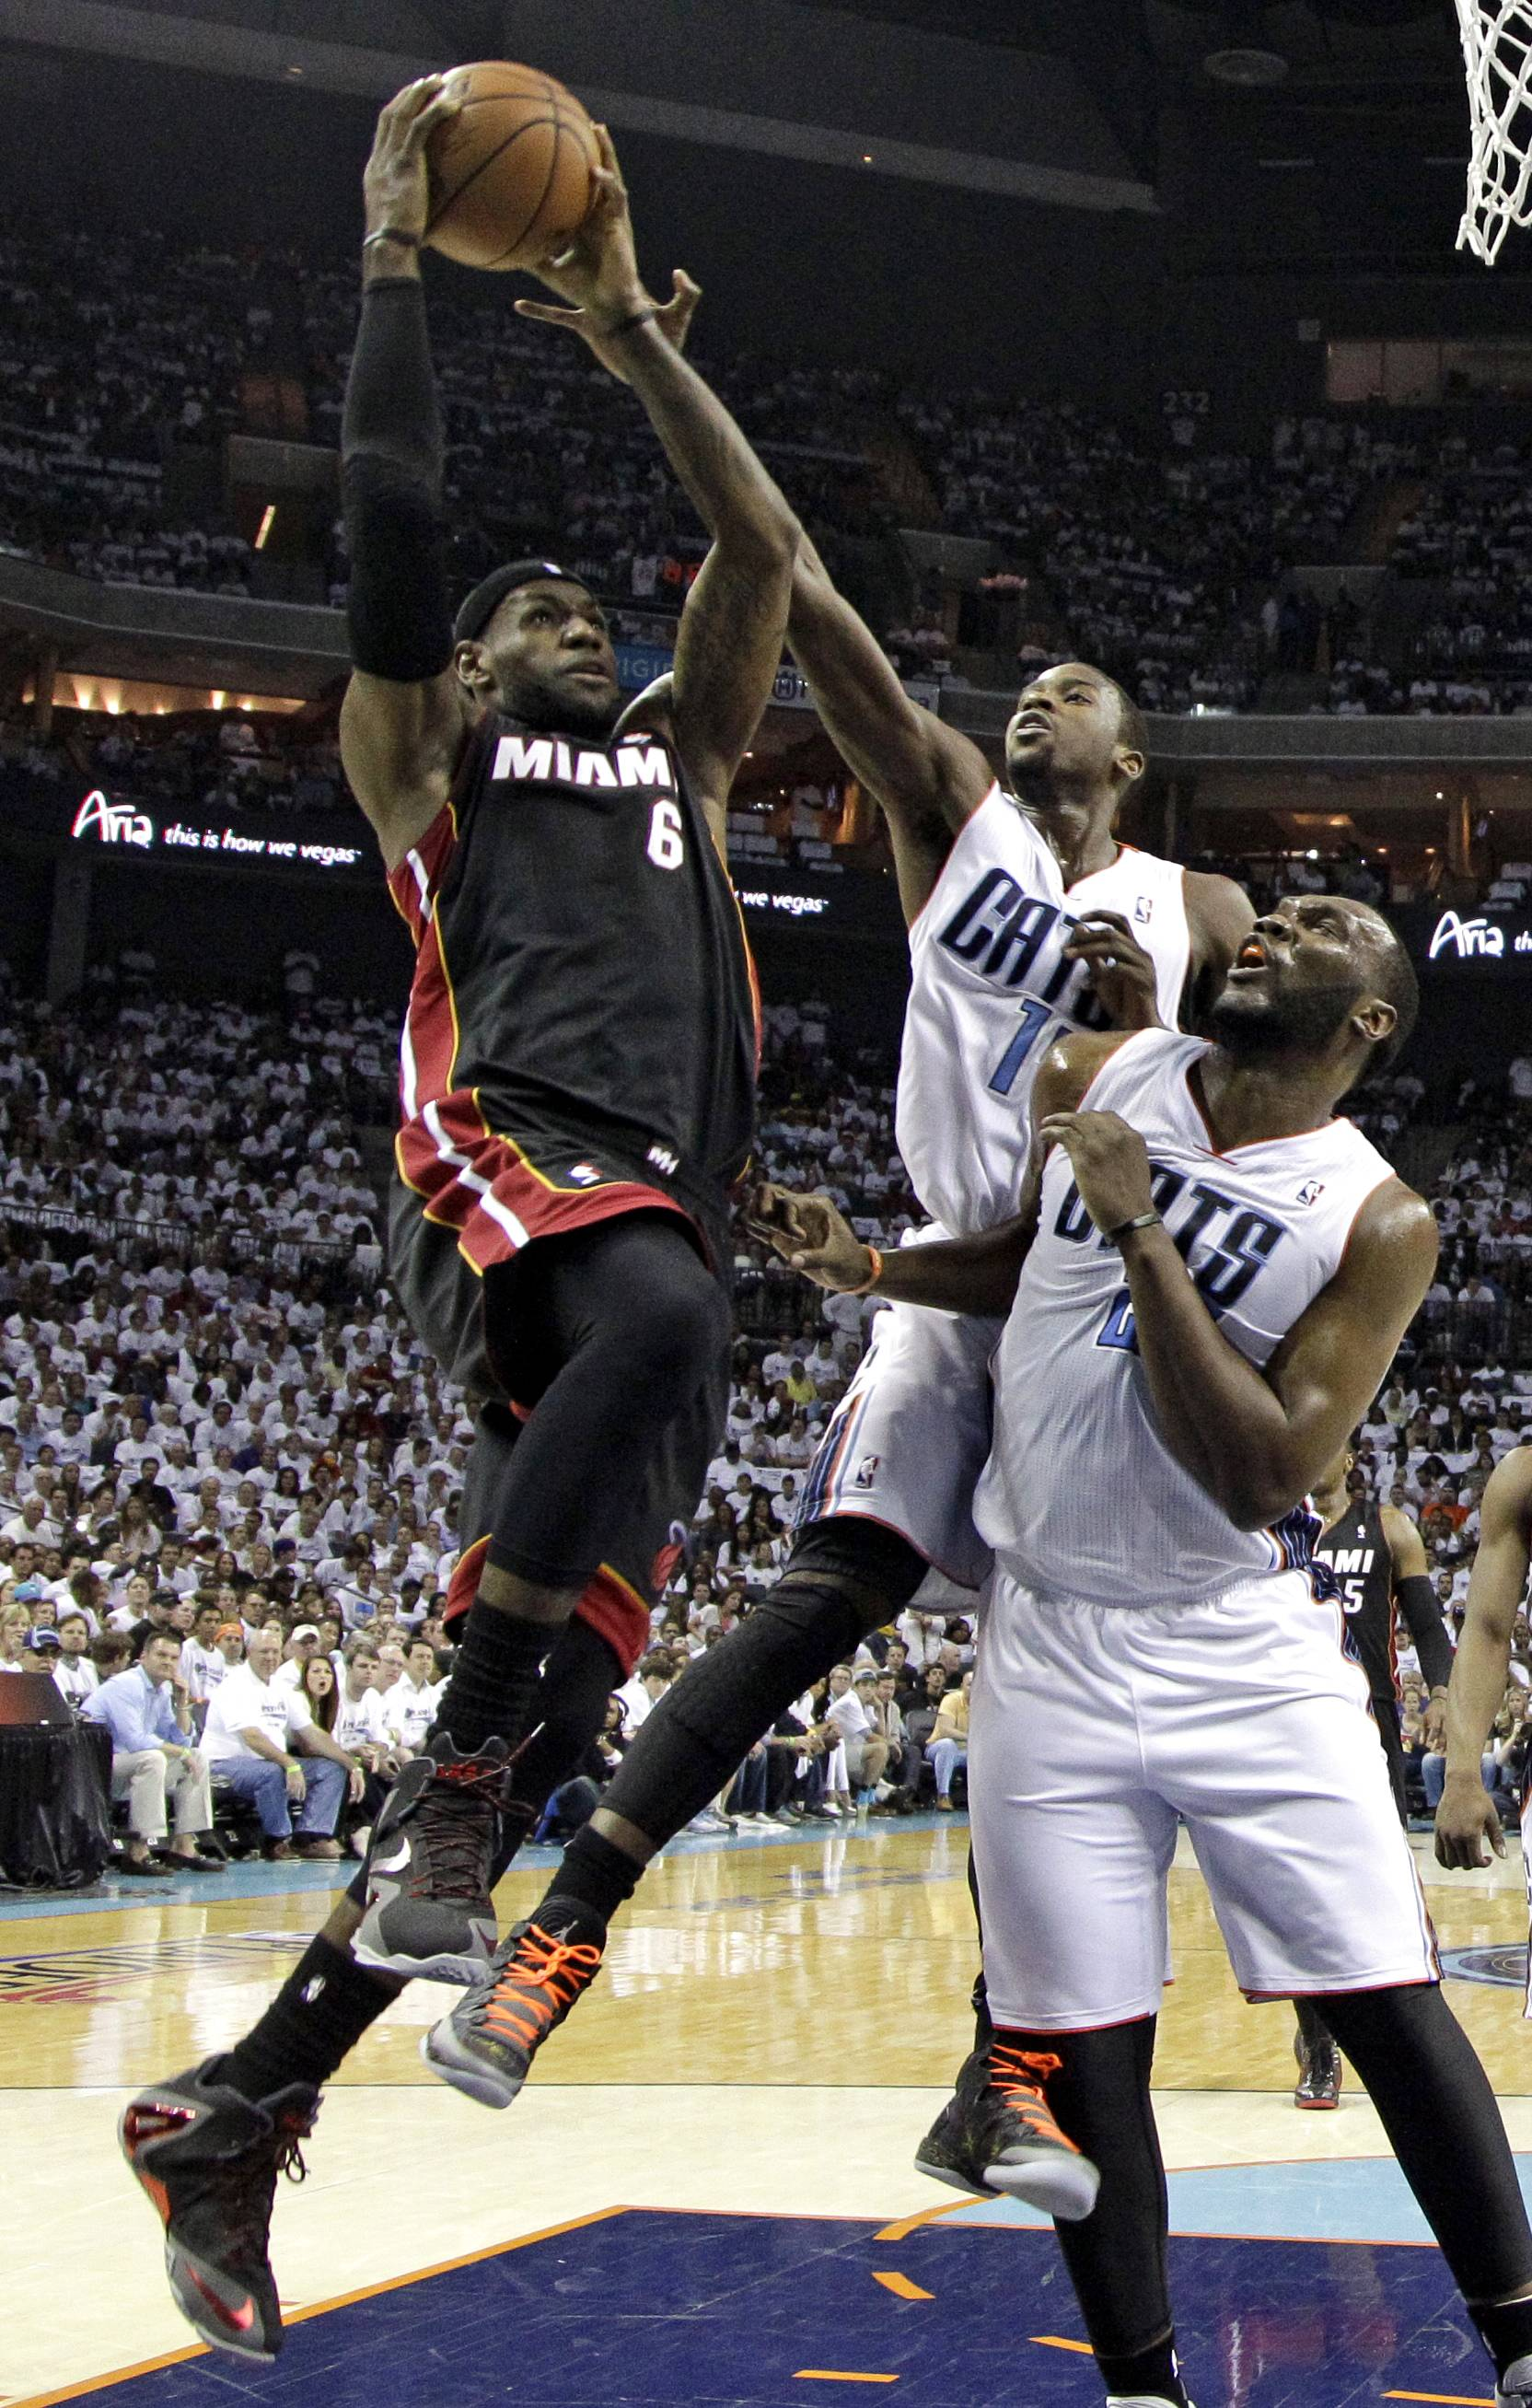 Miami Heat's LeBron James, left, shoots over Charlotte Bobcats' Michael Kidd-Gilchrist, center, and Al Jefferson, right, during Game 3 of an opening-round NBA basketball playoff series Saturday in Charlotte, N.C.